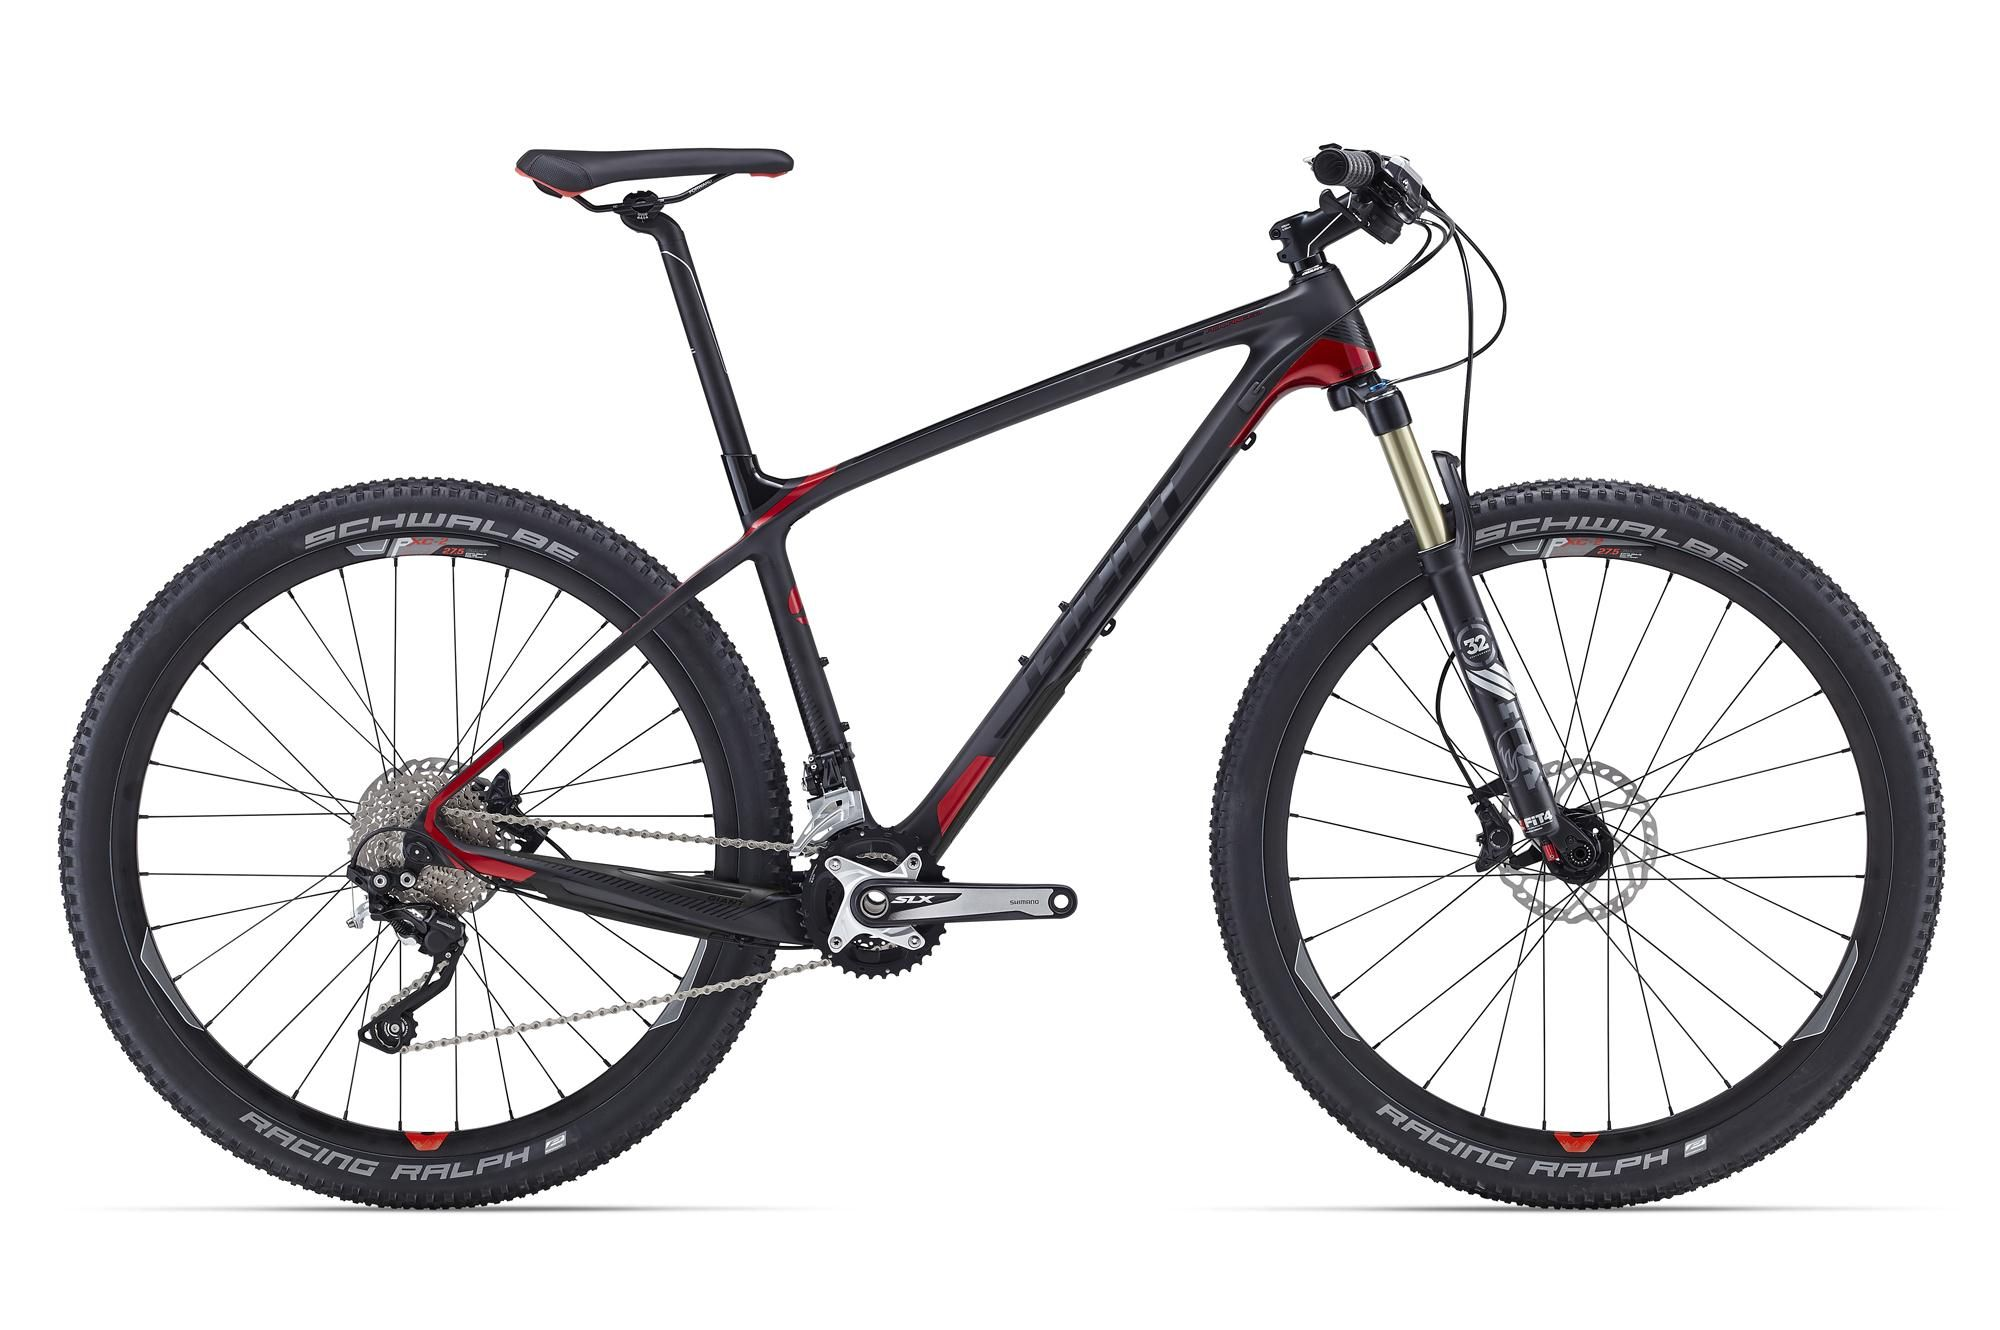 Велосипед Giant XtC Advanced 27.5 2 2016 велосипед giant xtc advanced 27 5 2 2016